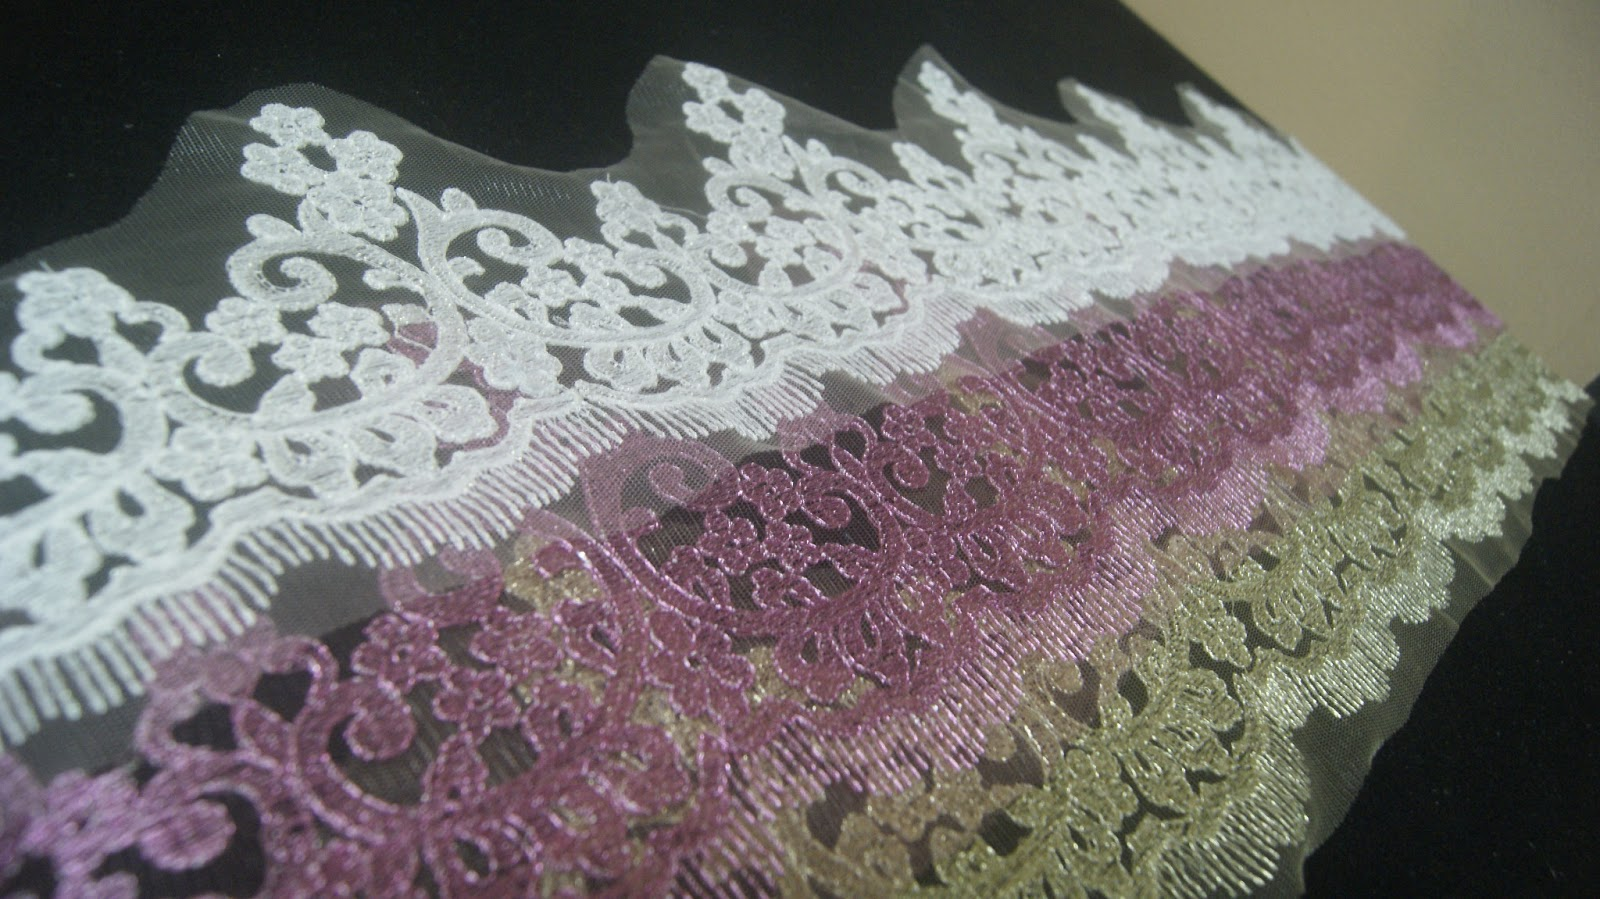 Border lace murah! Latest update!